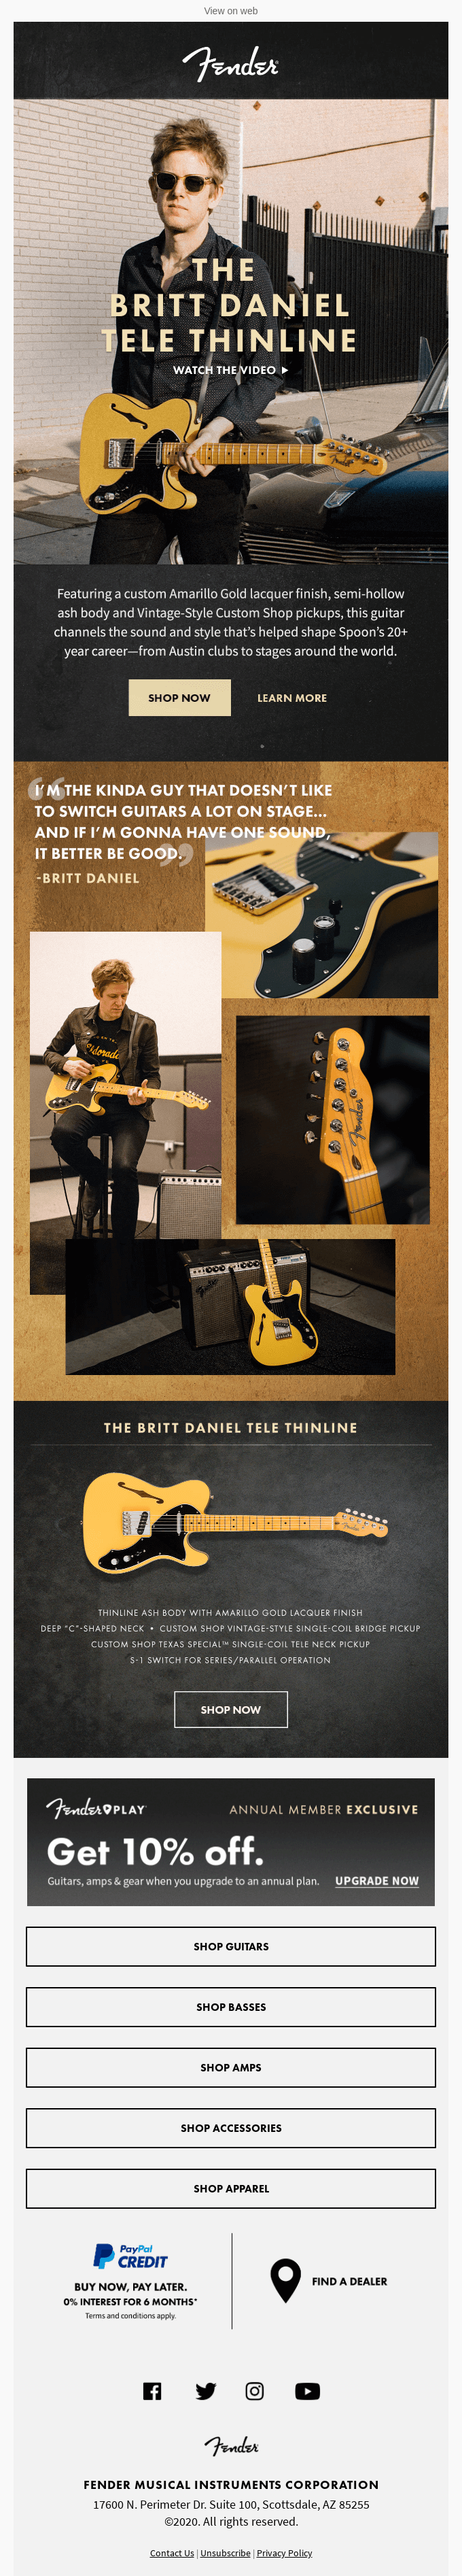 Introducing The Britt Daniel Tele Thinline